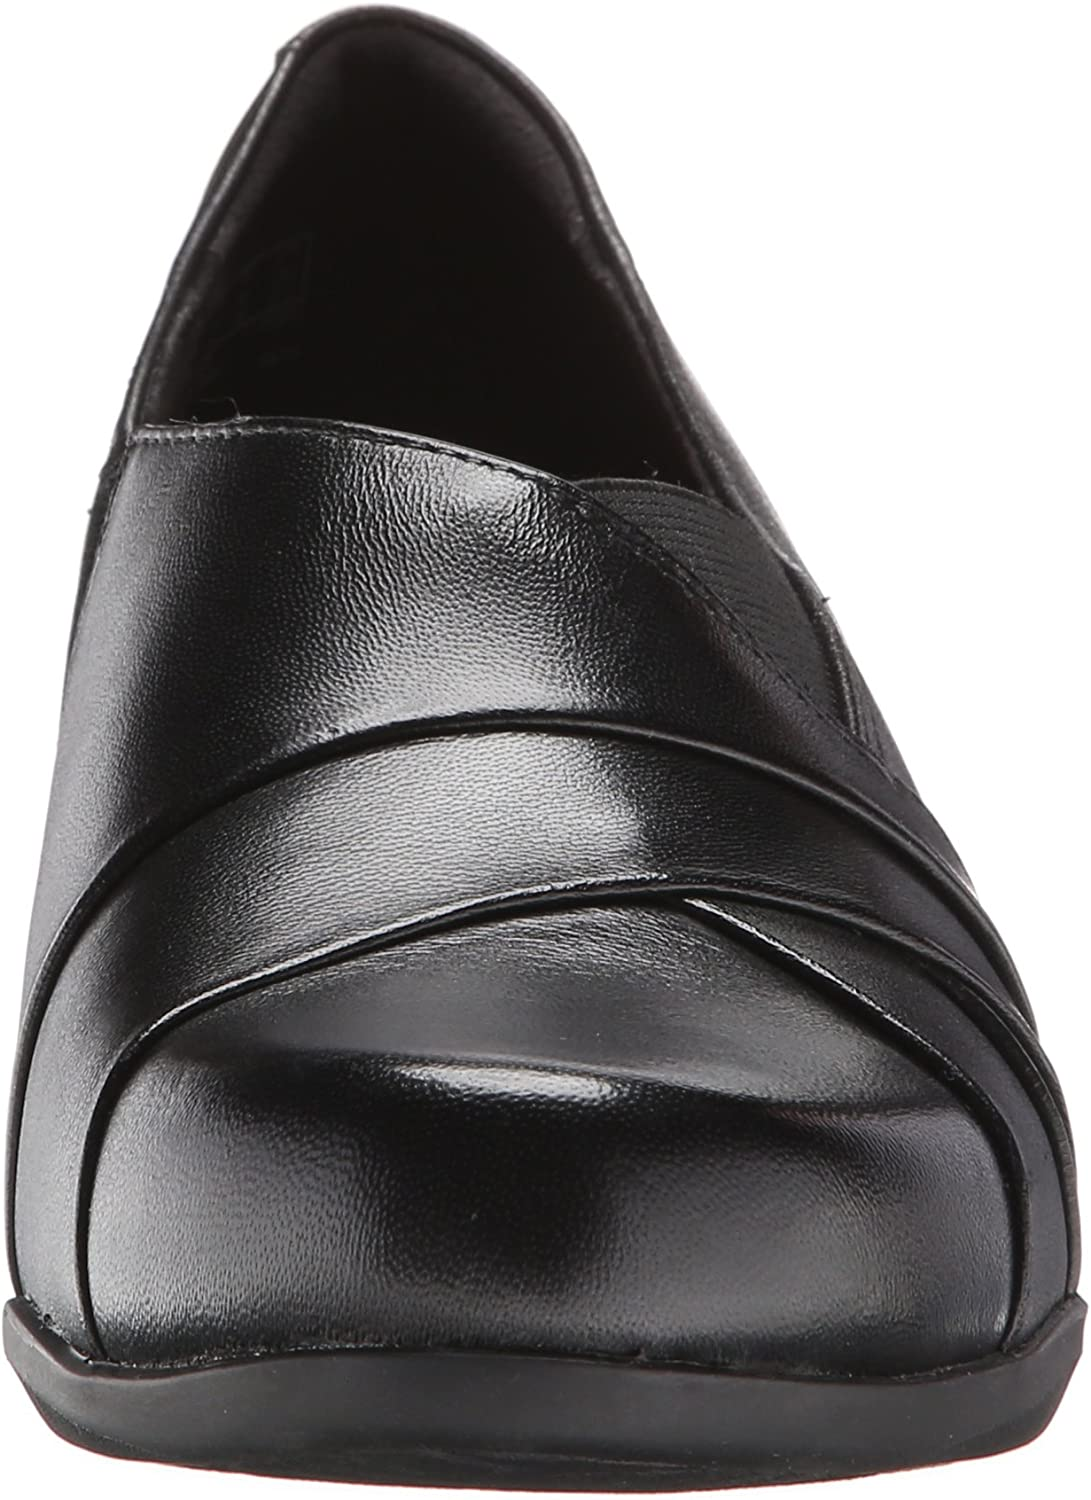 Clarks Rosalyn Adele Cuir Noir 38 EU Black Leather